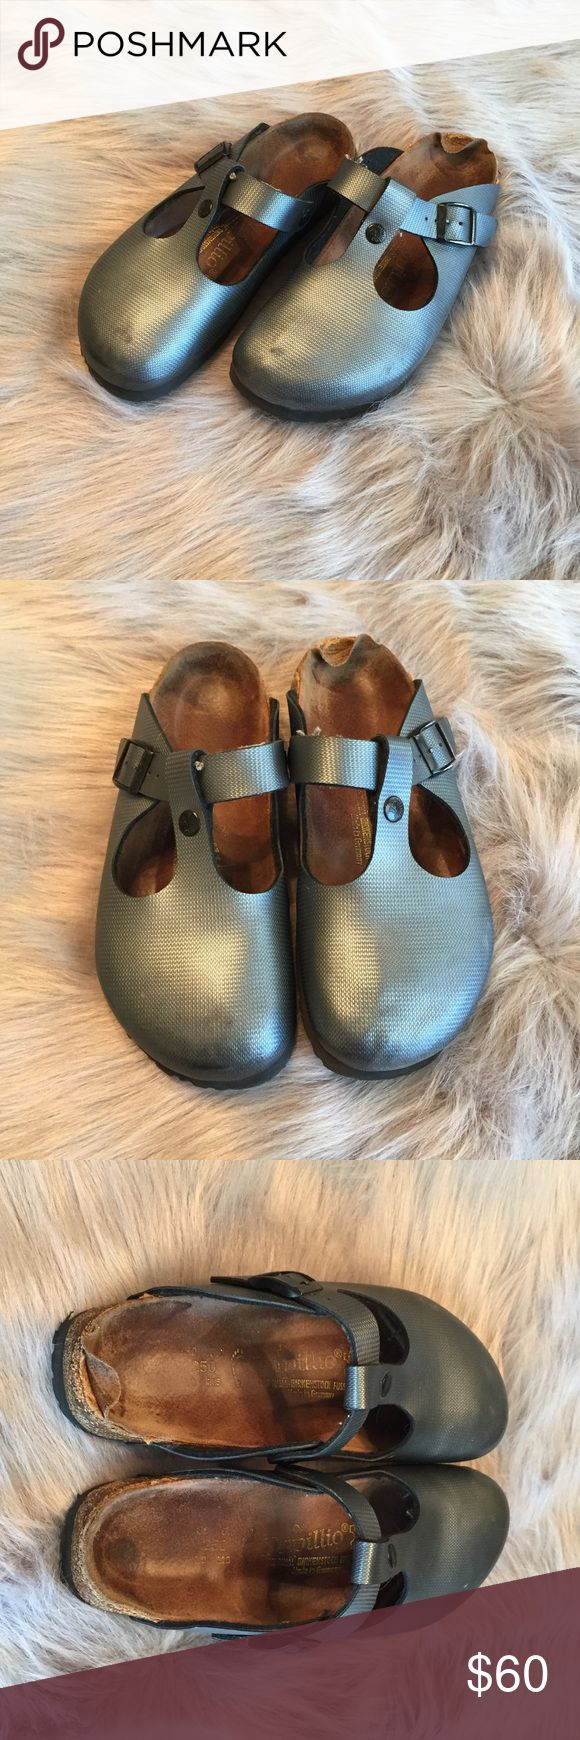 Papillio Birkenstock Gun Metal Gray Clogs size 8 Size 8   Damaged on heel. Refer to pictures. Birkenstock Shoes Mules & Clogs